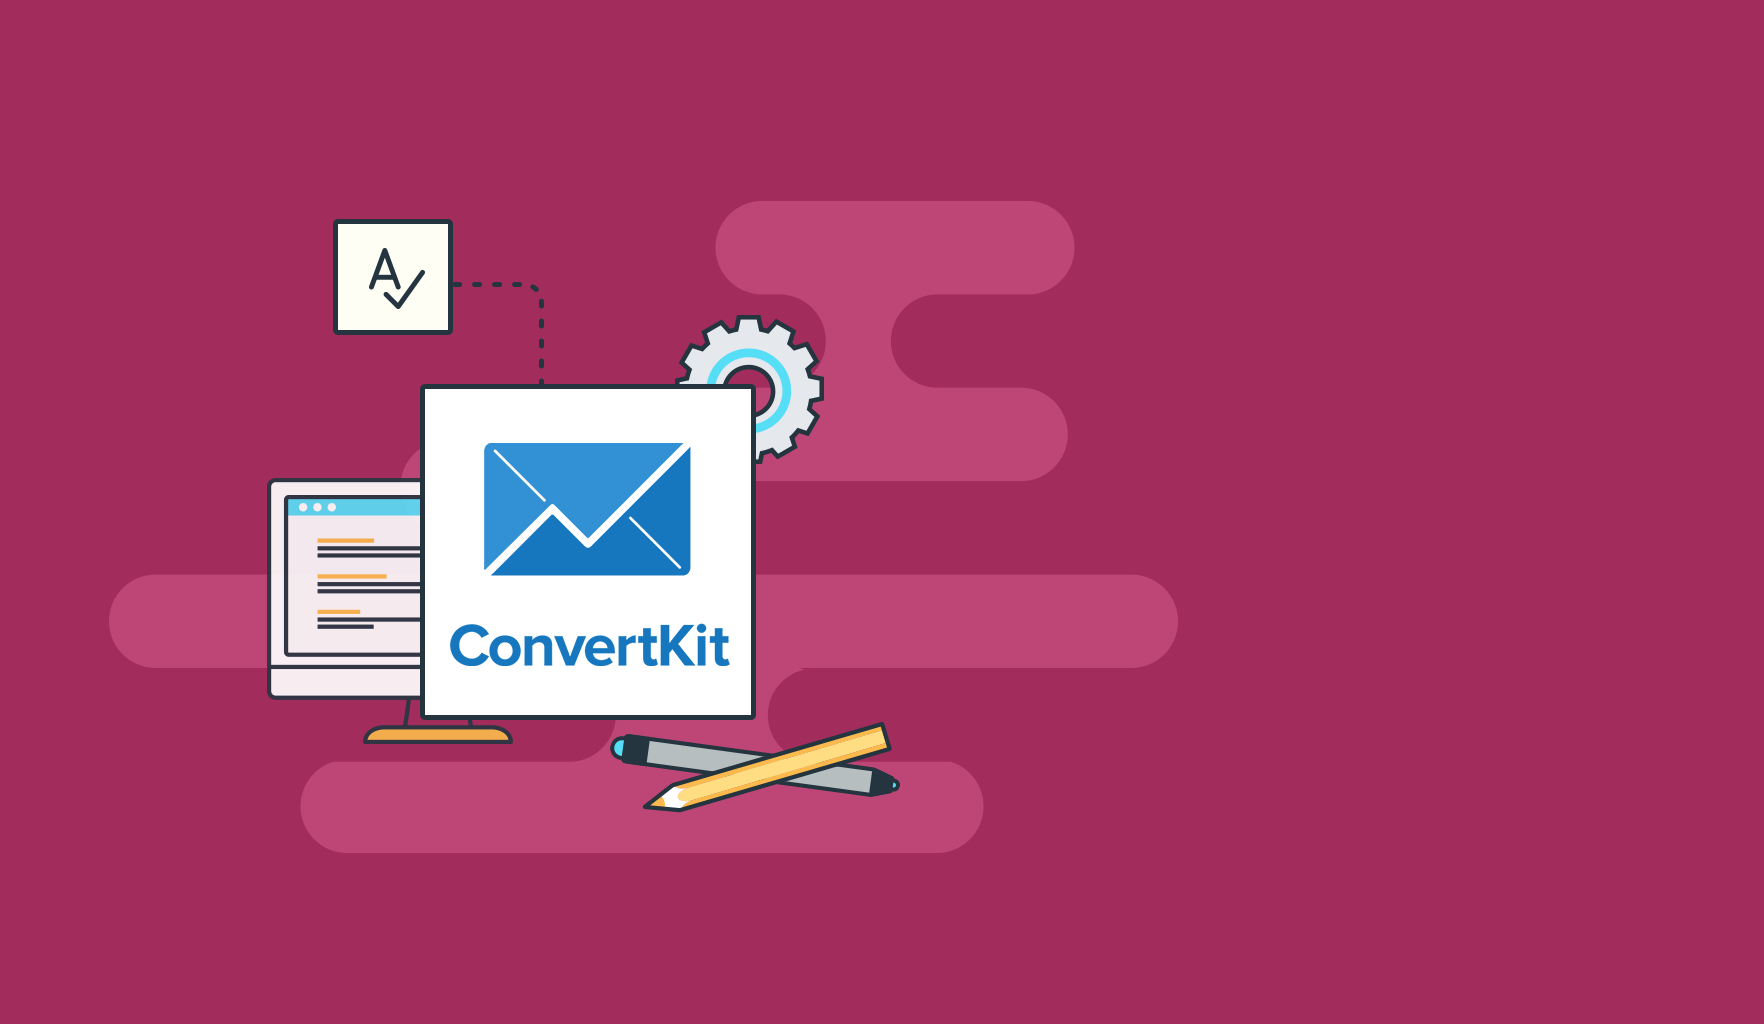 Online Coupon Printable 100 Off Convertkit Email Marketing 2020